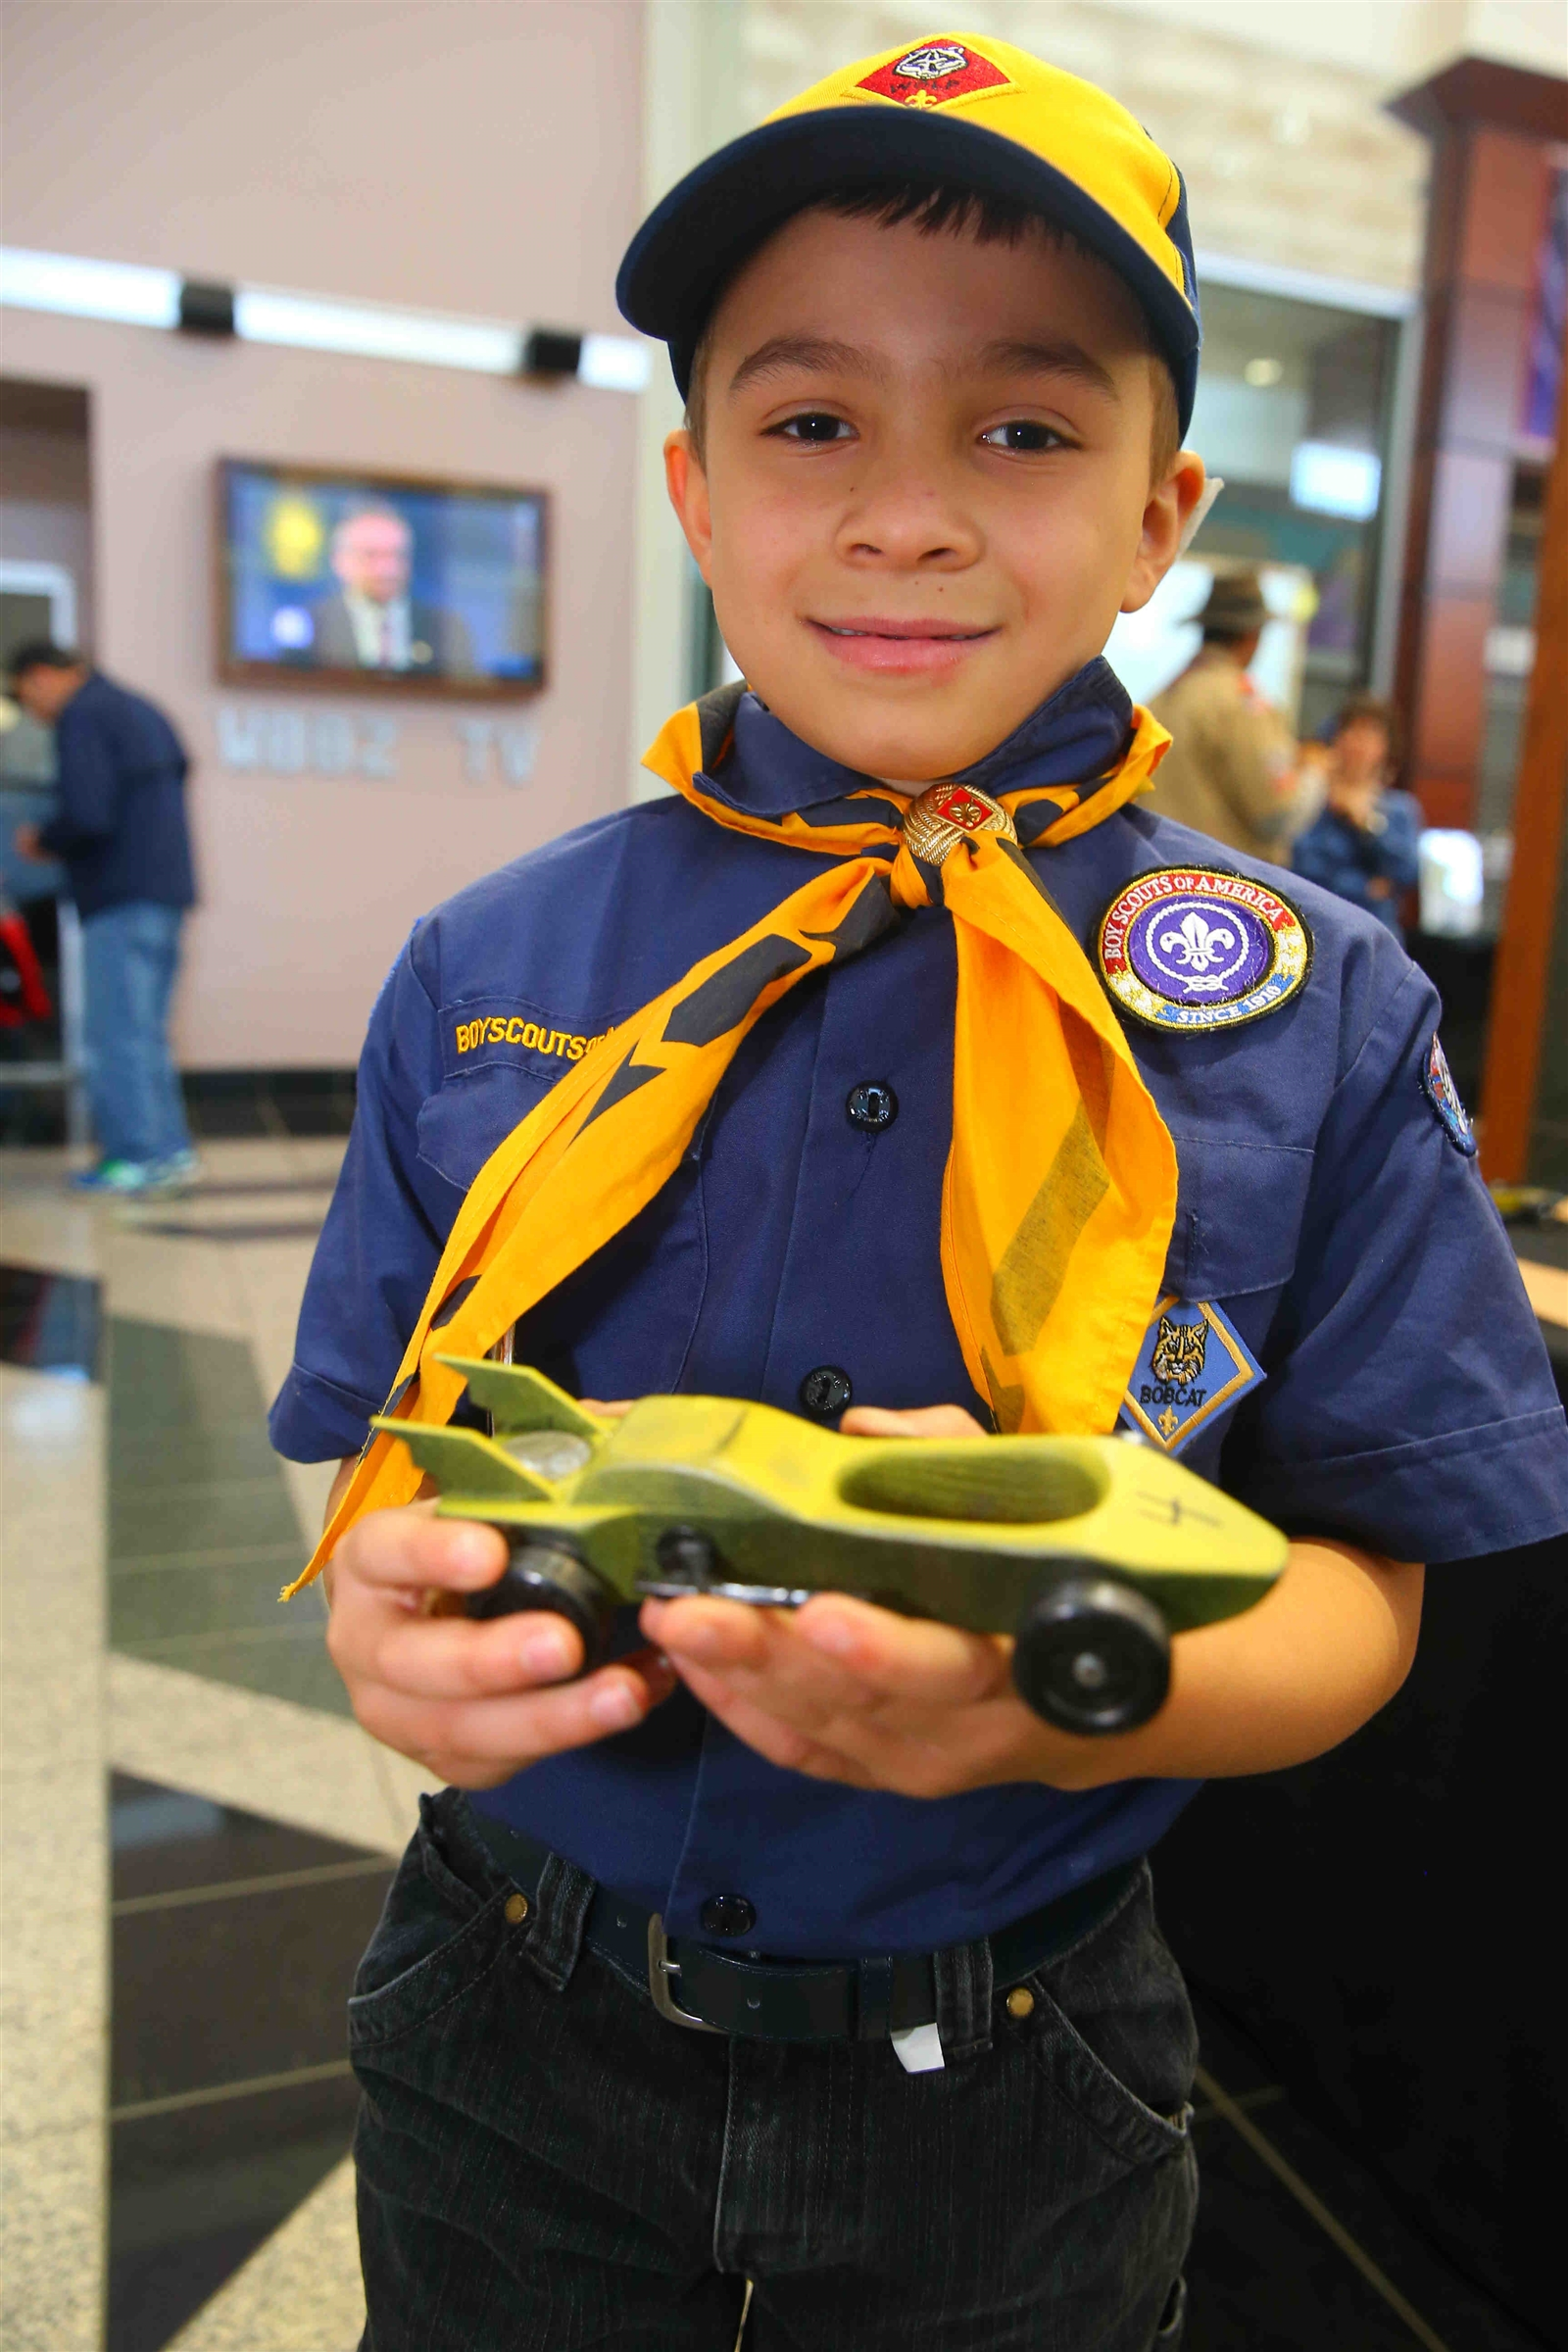 Bryce Ranalletta of Pack 563 , 7, holds up his pinewood car at the Onondaga Cub Scout Packs Pinewood Derby races.